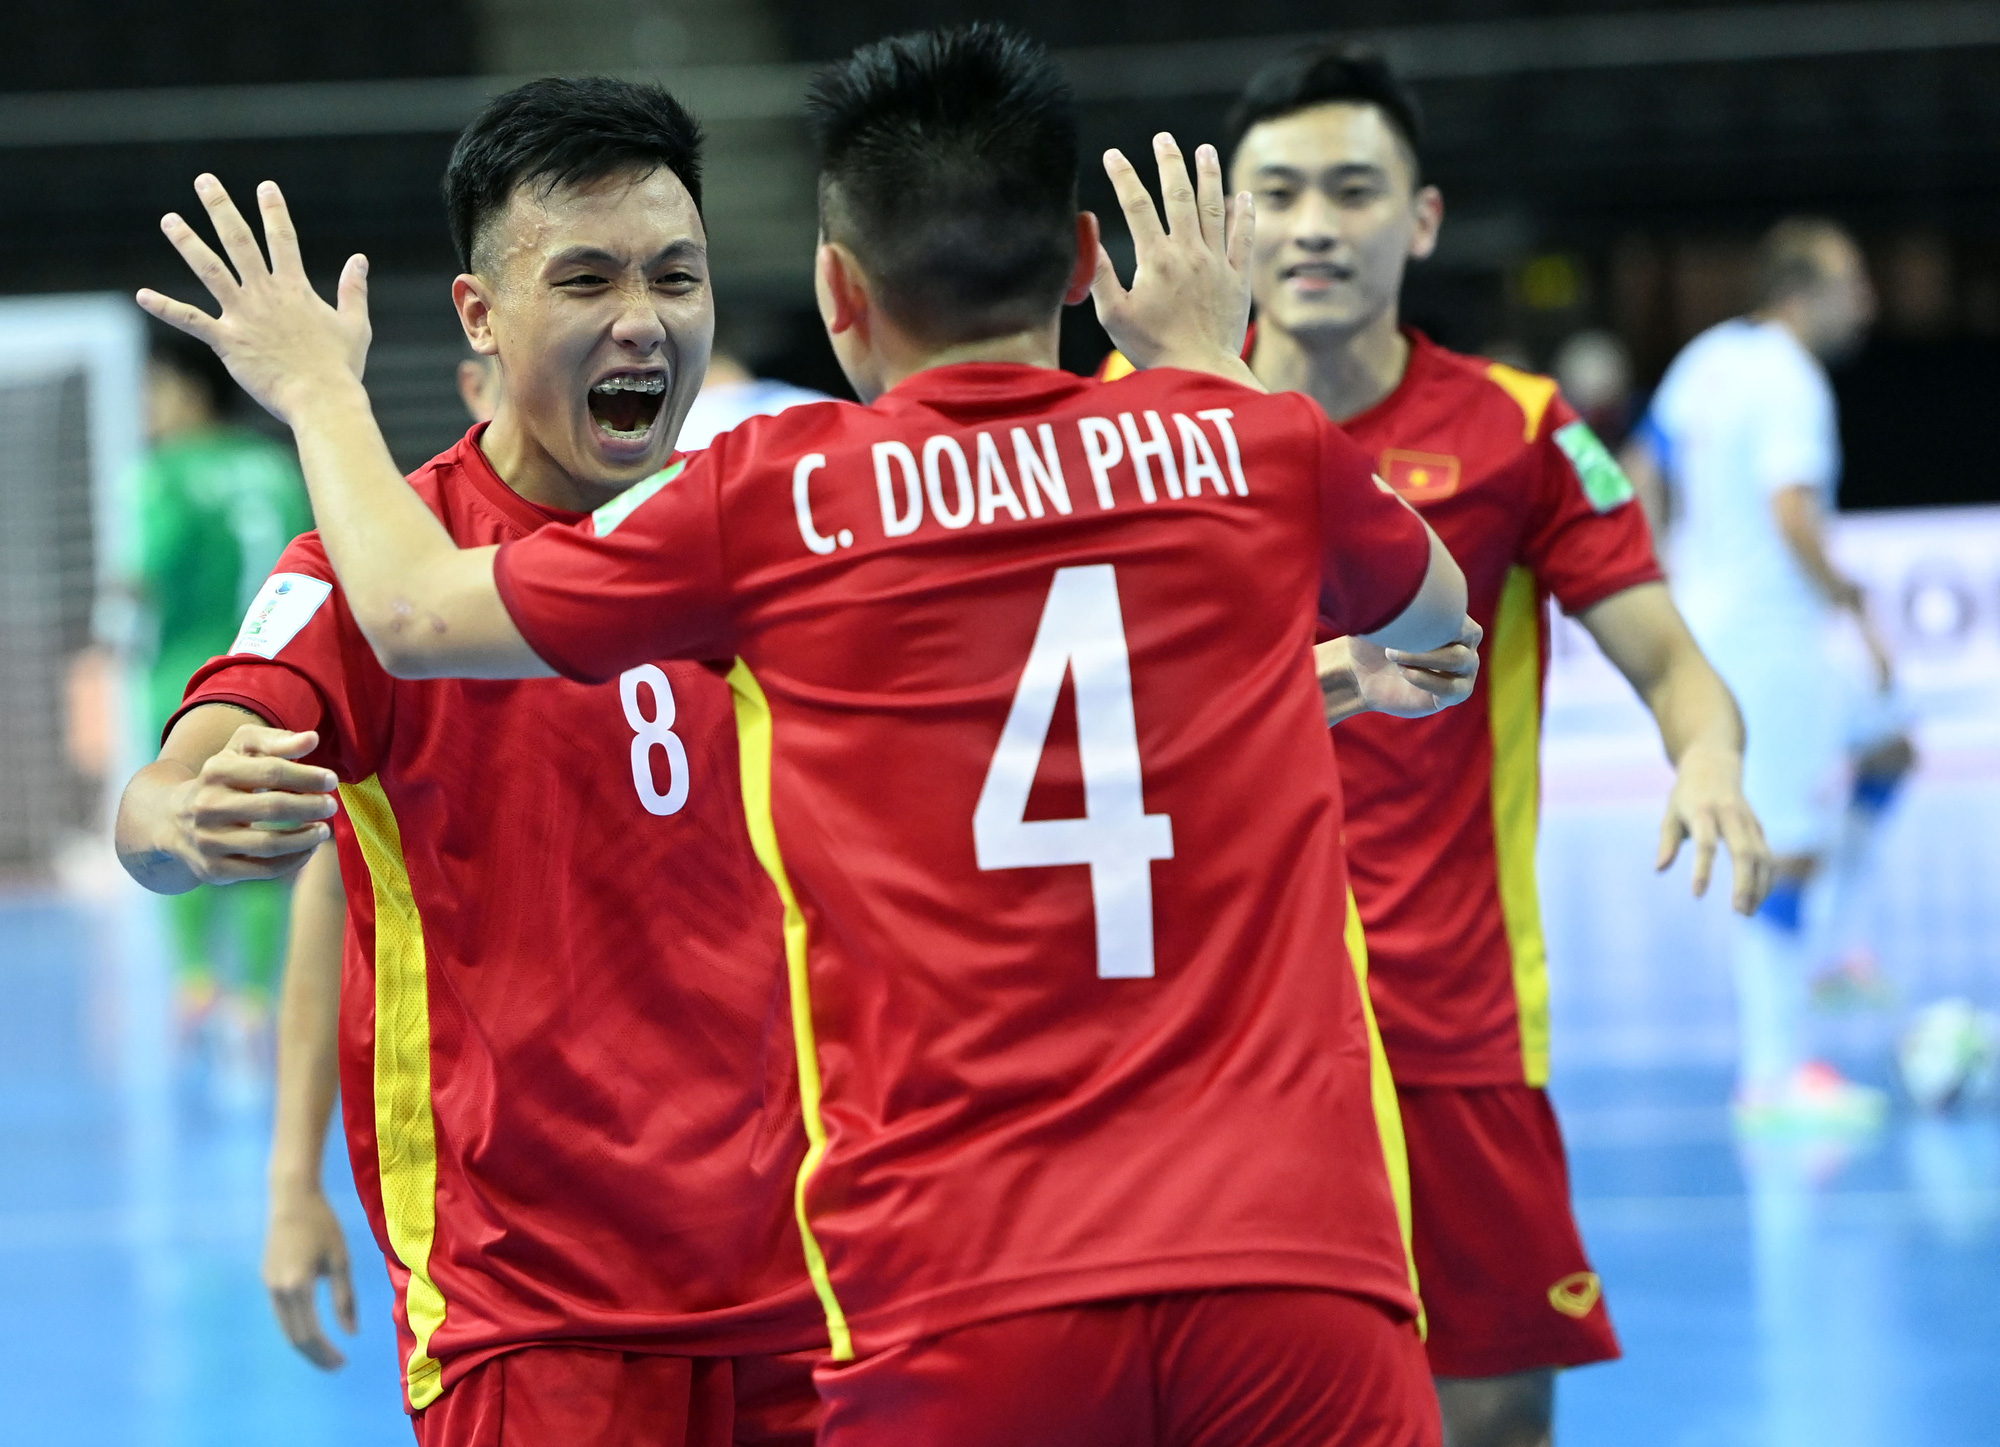 Vietnam's players celebrate Chau Doan Phat's goal in their match against the Czech Republic at the FIFA Futsal World Cup Lithuania 2021, September 19, 2021. Photo: Vietnam Football Federation.